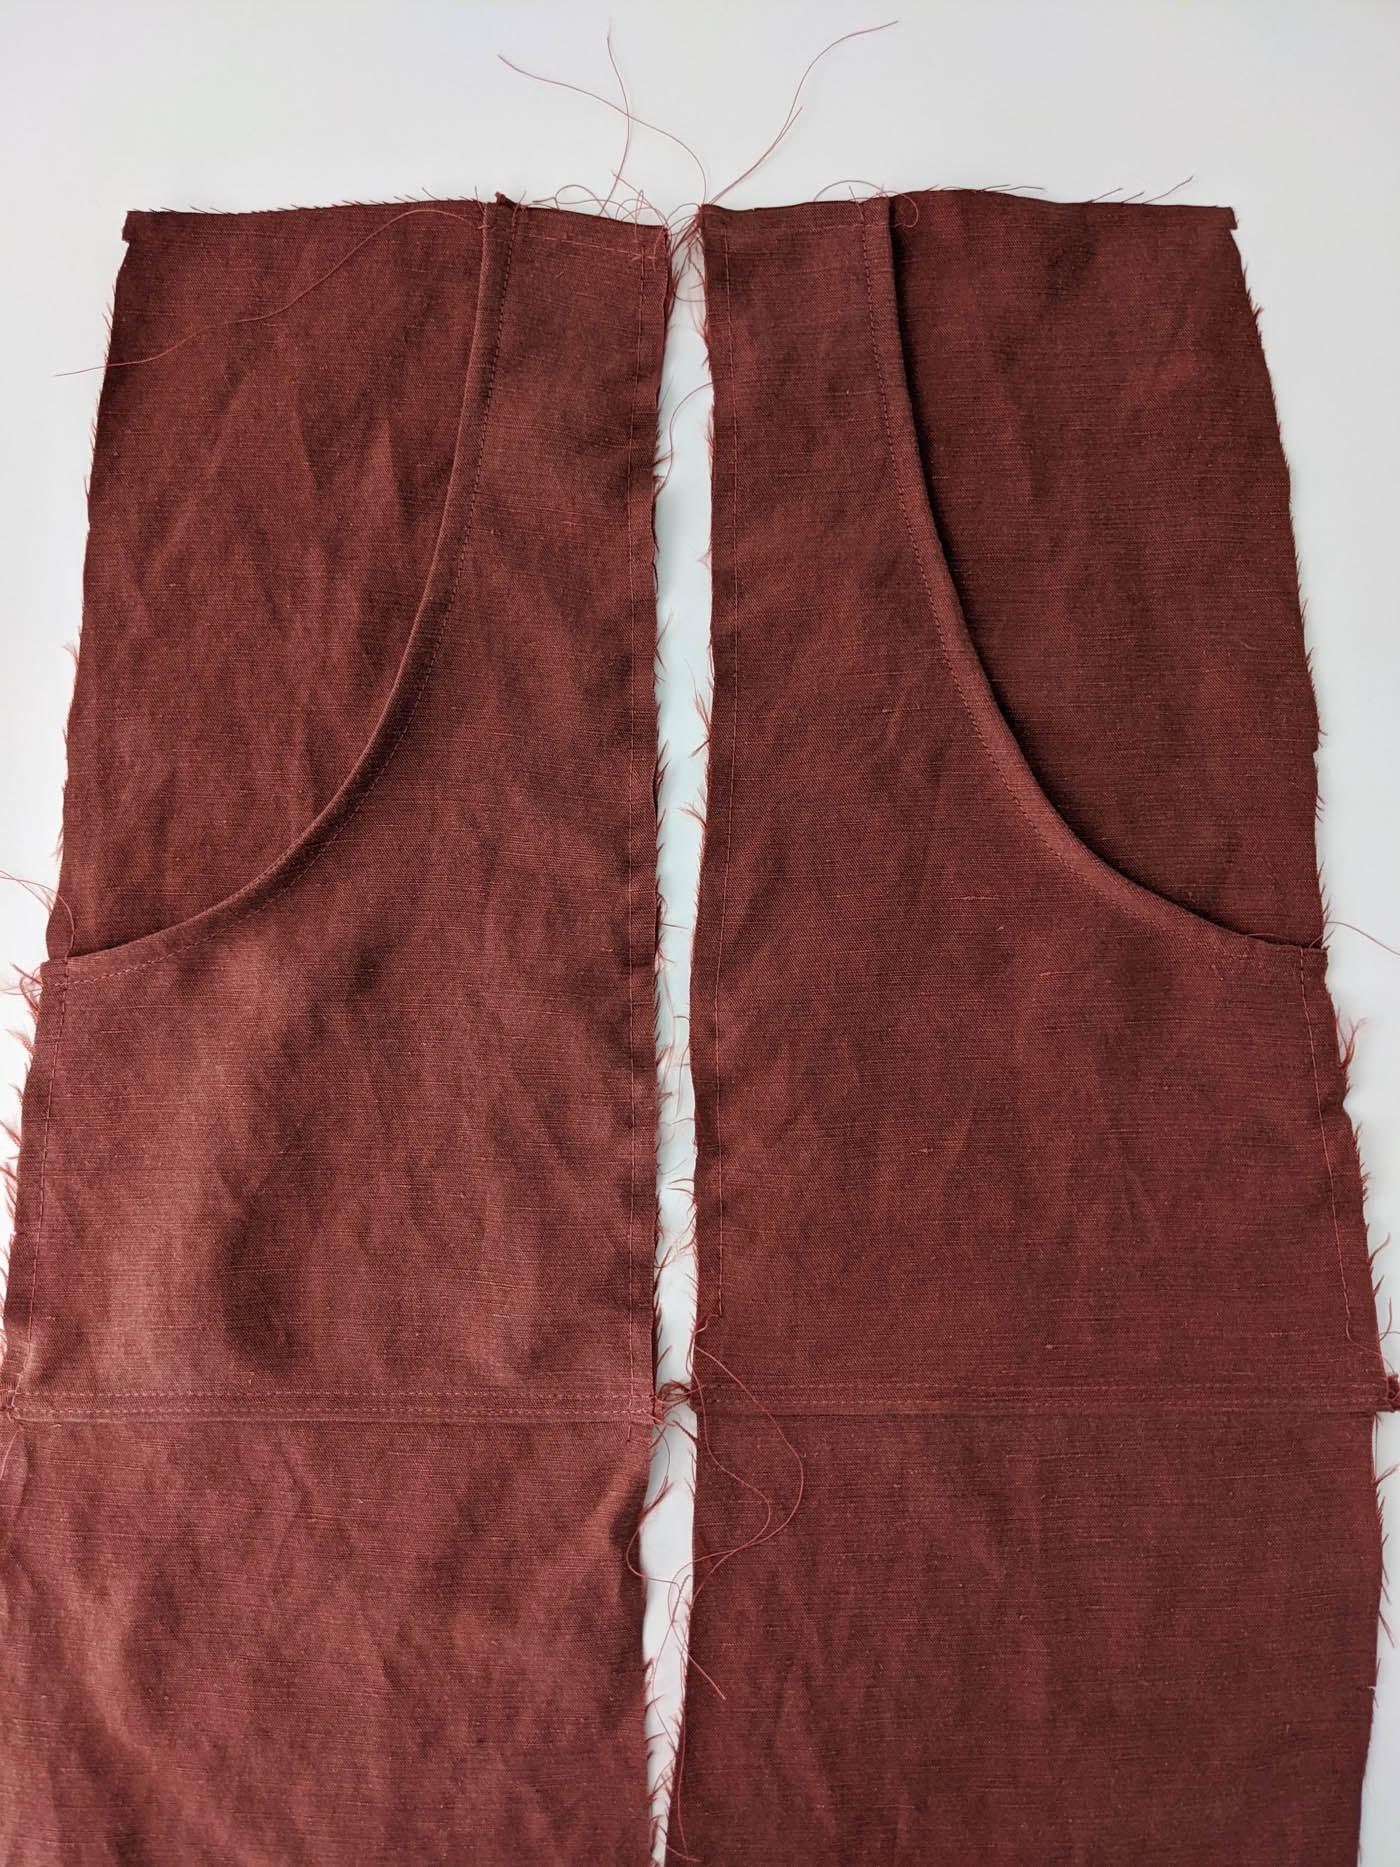 Photograph of lay flat with pattern laid out, looking straight down on fabric with pins holding the project in place. The cutouts are in a rust color against a white background.